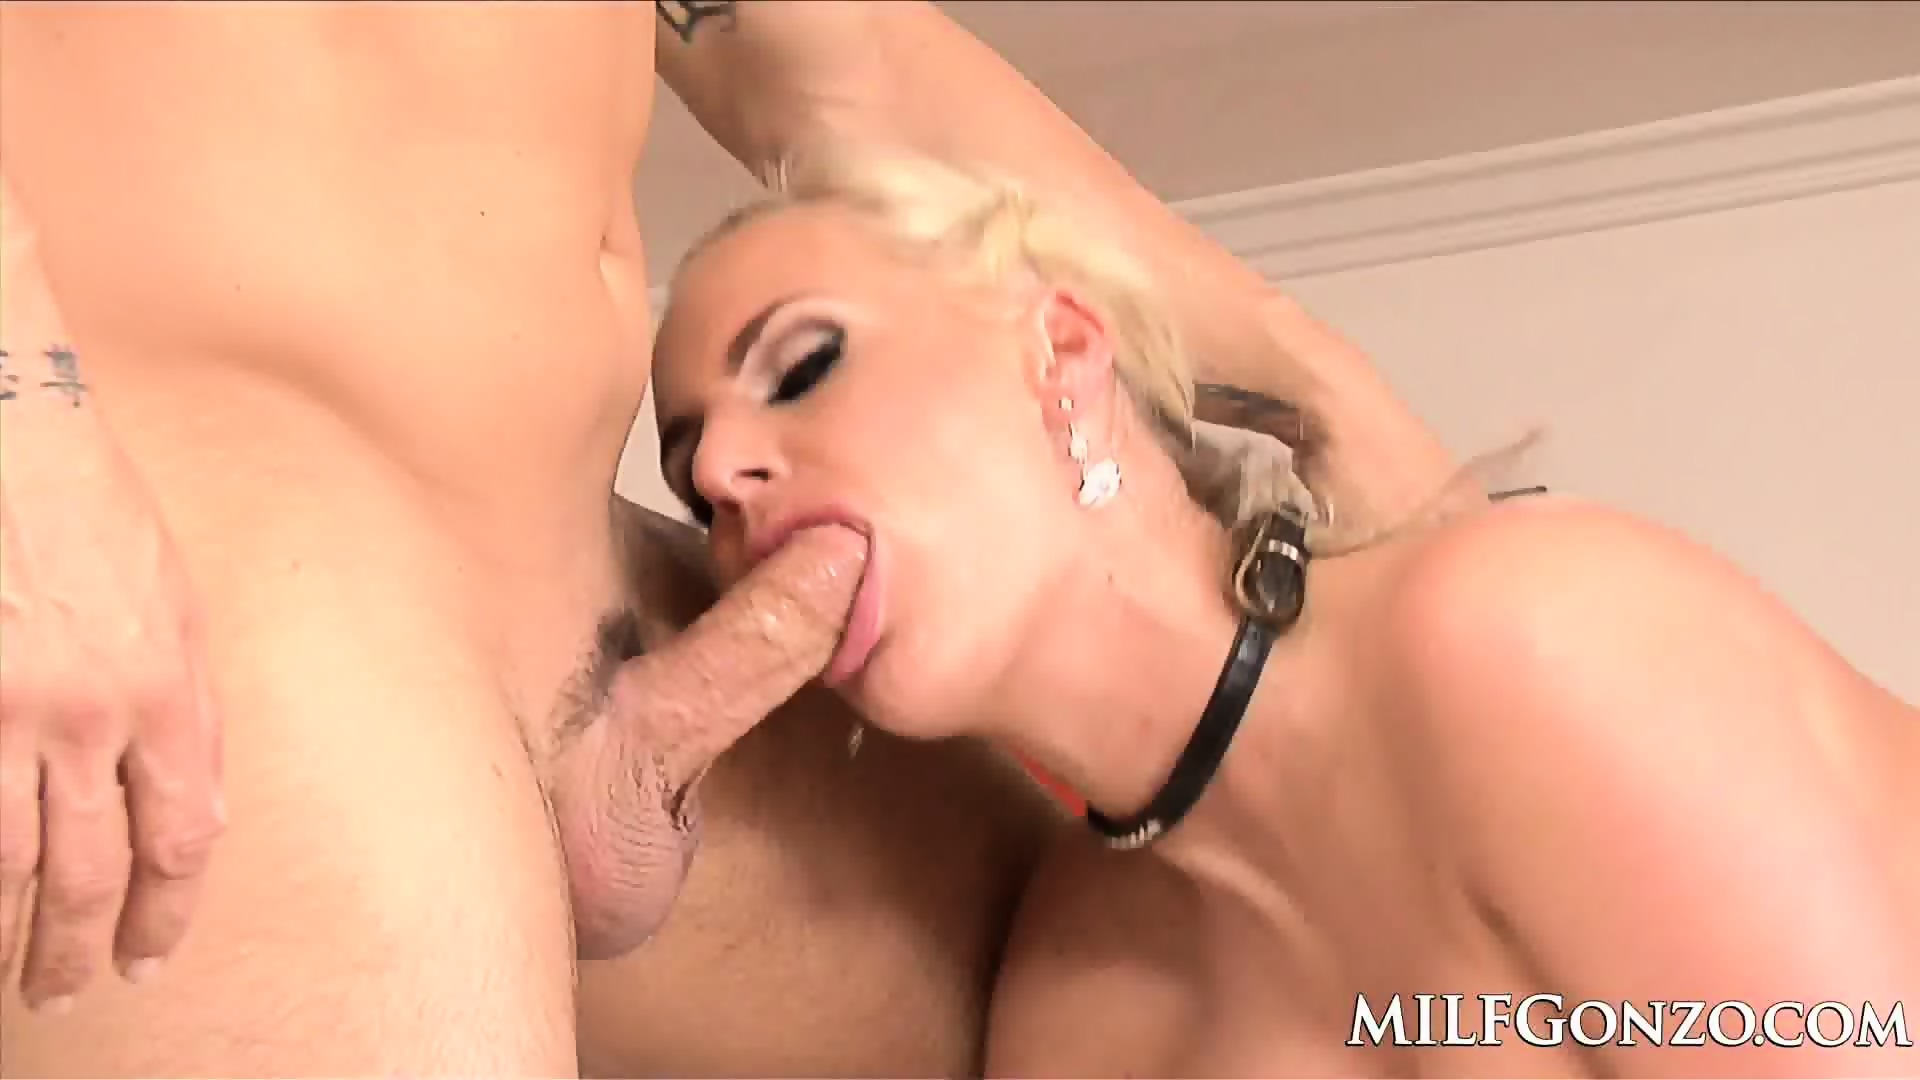 Teengonzo tattooed babes strip lick and fuck each other 6